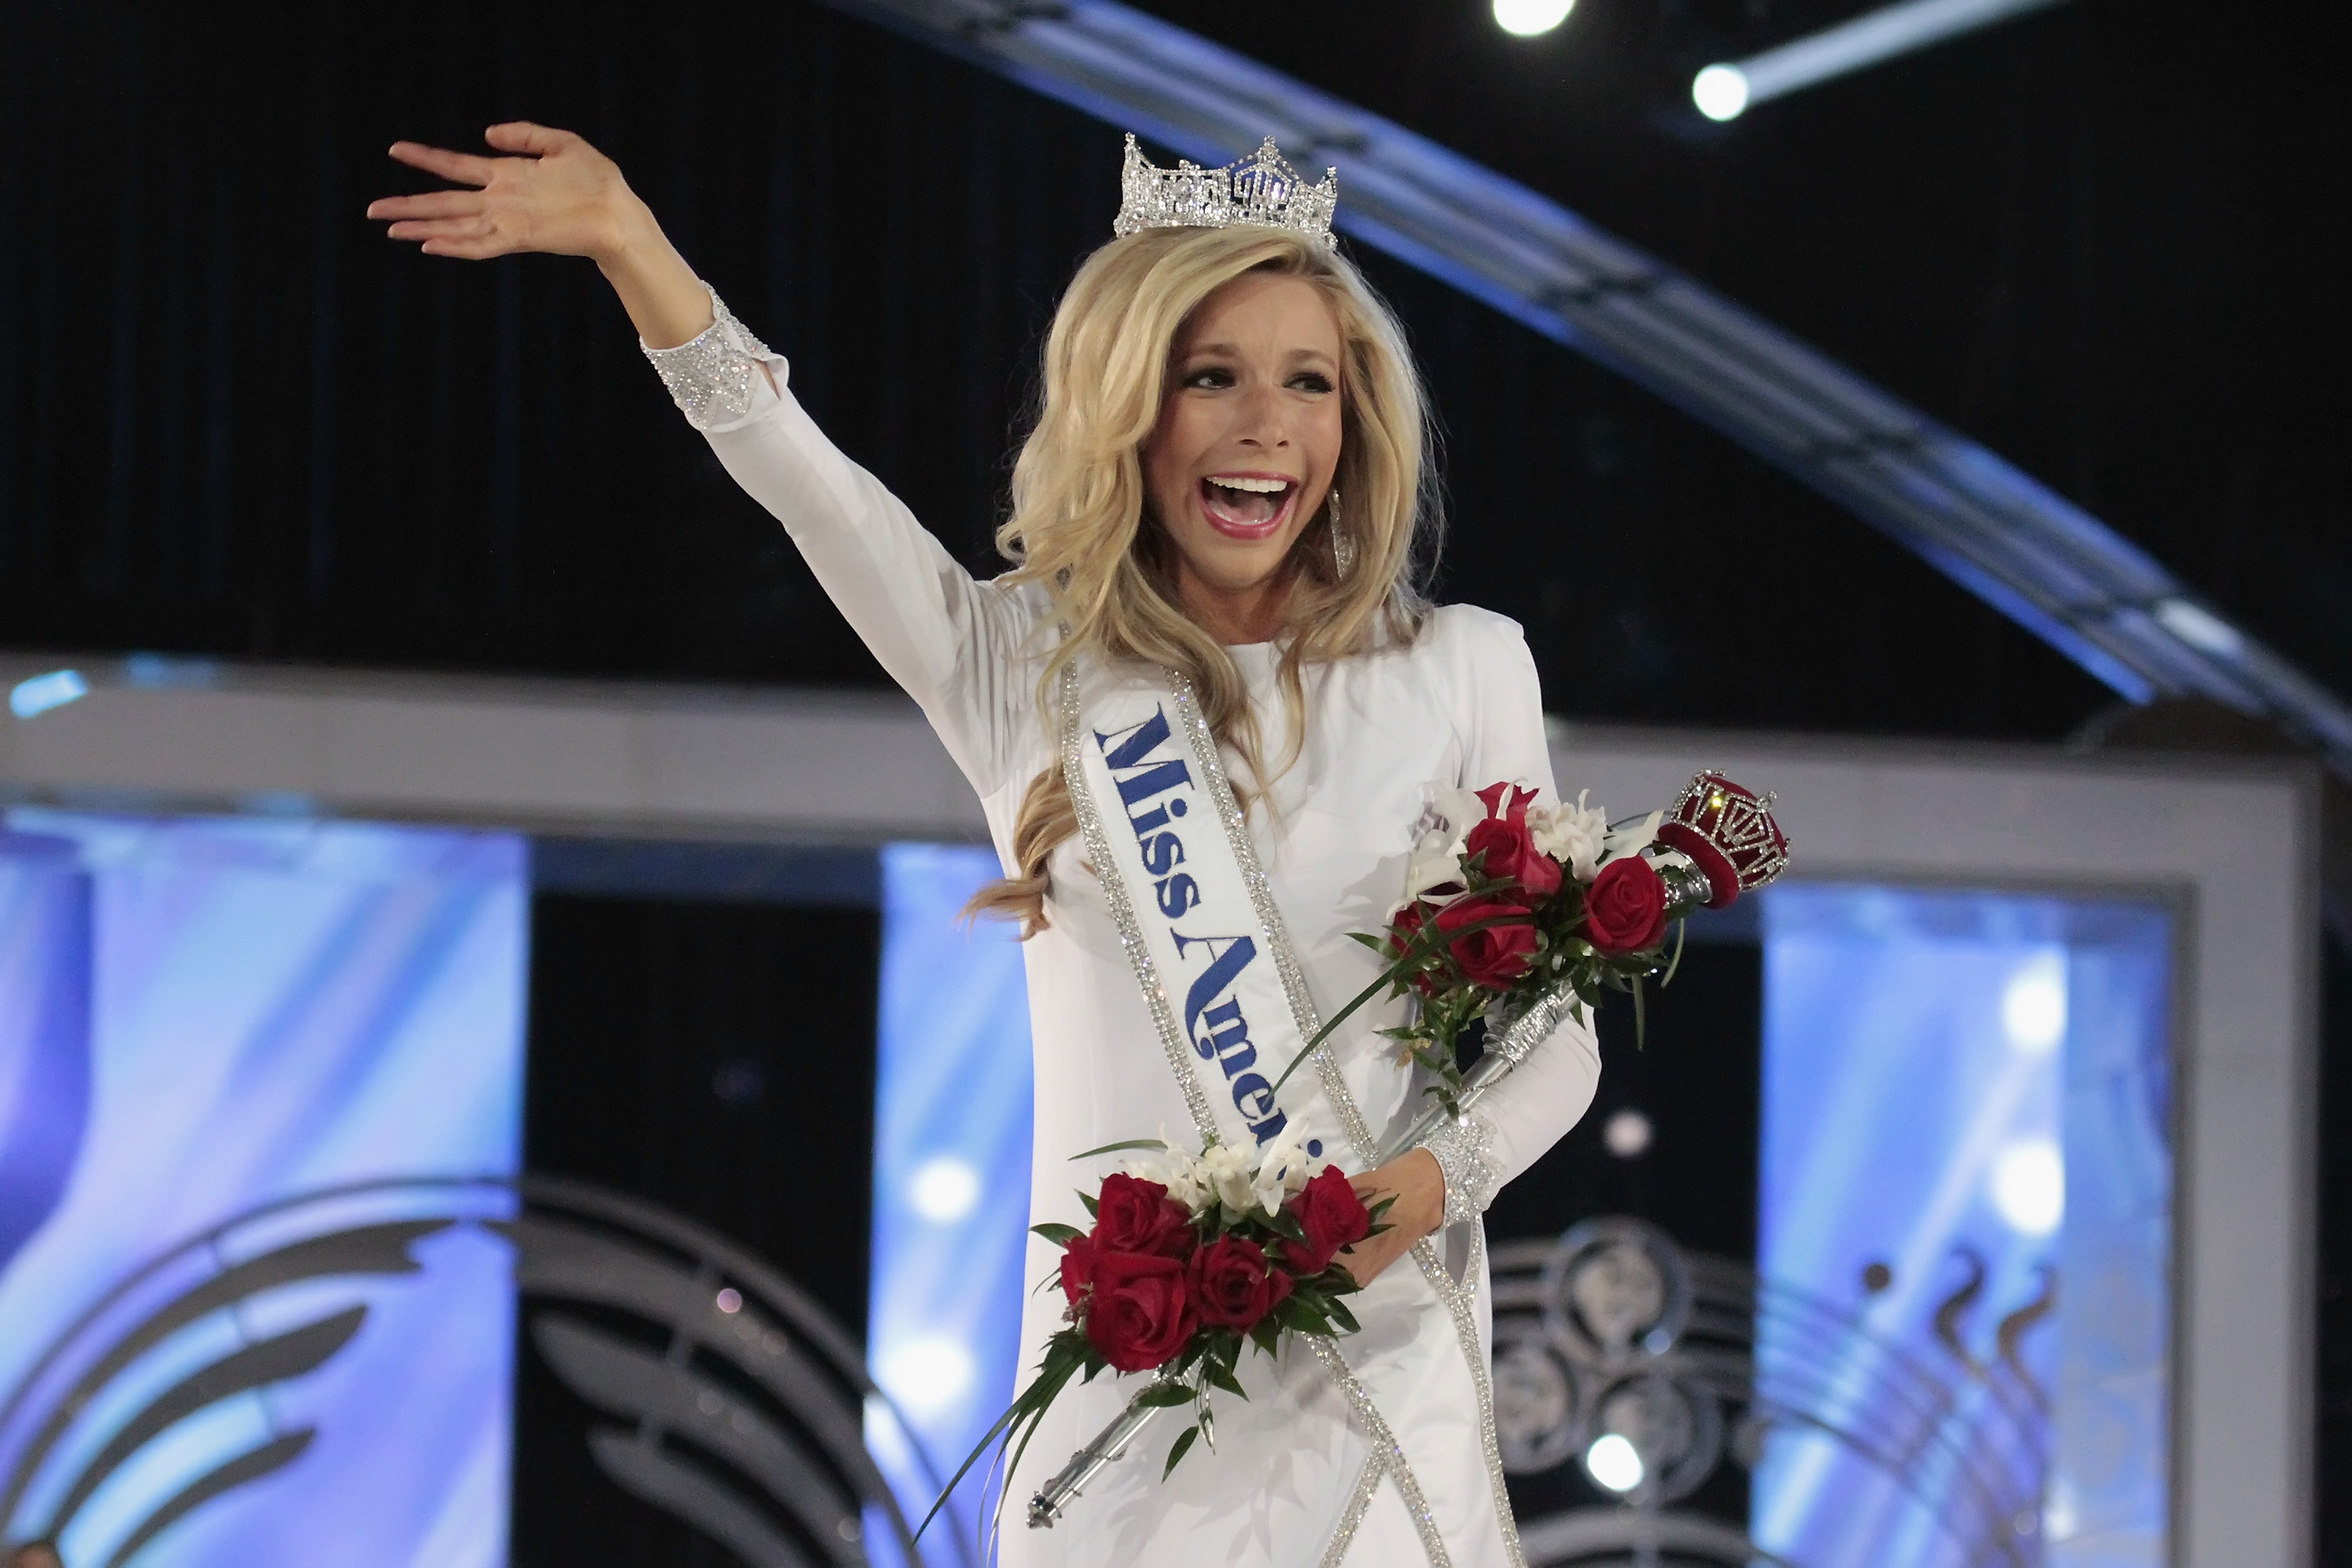 Kira Kazantsev, newly crowned Miss America 2015 walks the runway at Atlantic City Boardwalk Hall on September 14, 2014 in Atlantic City, New Jersey.